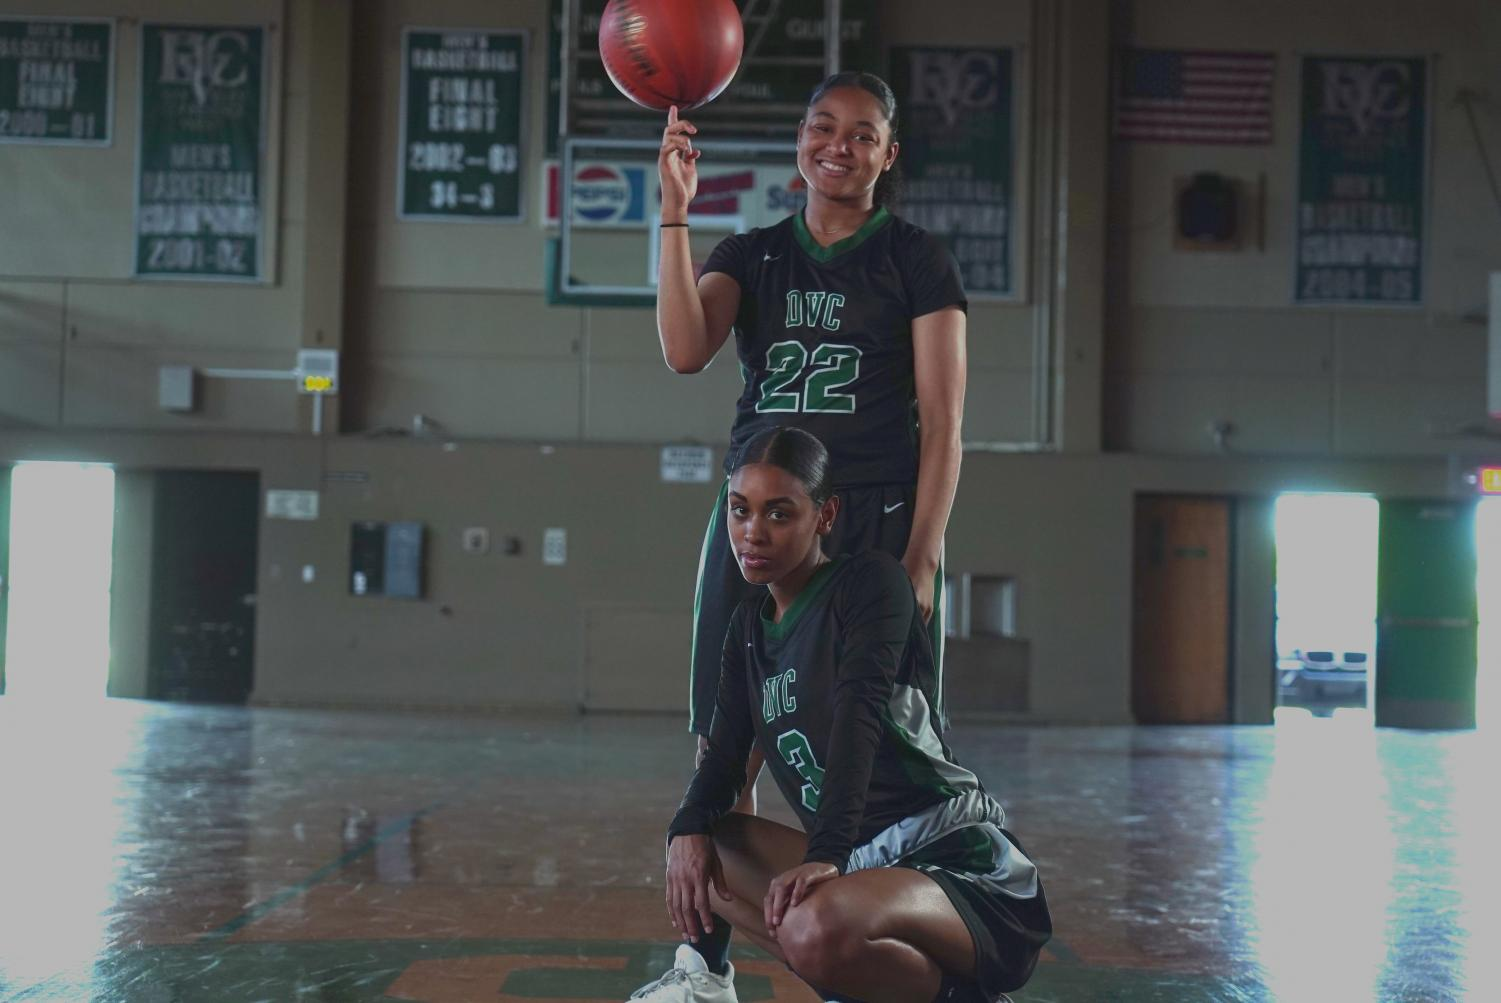 Daisha Abdelkder (below) and Sierra Smith (above) have become close friends, and even closer teammates. (Ethan Anderson/The Inquirer).